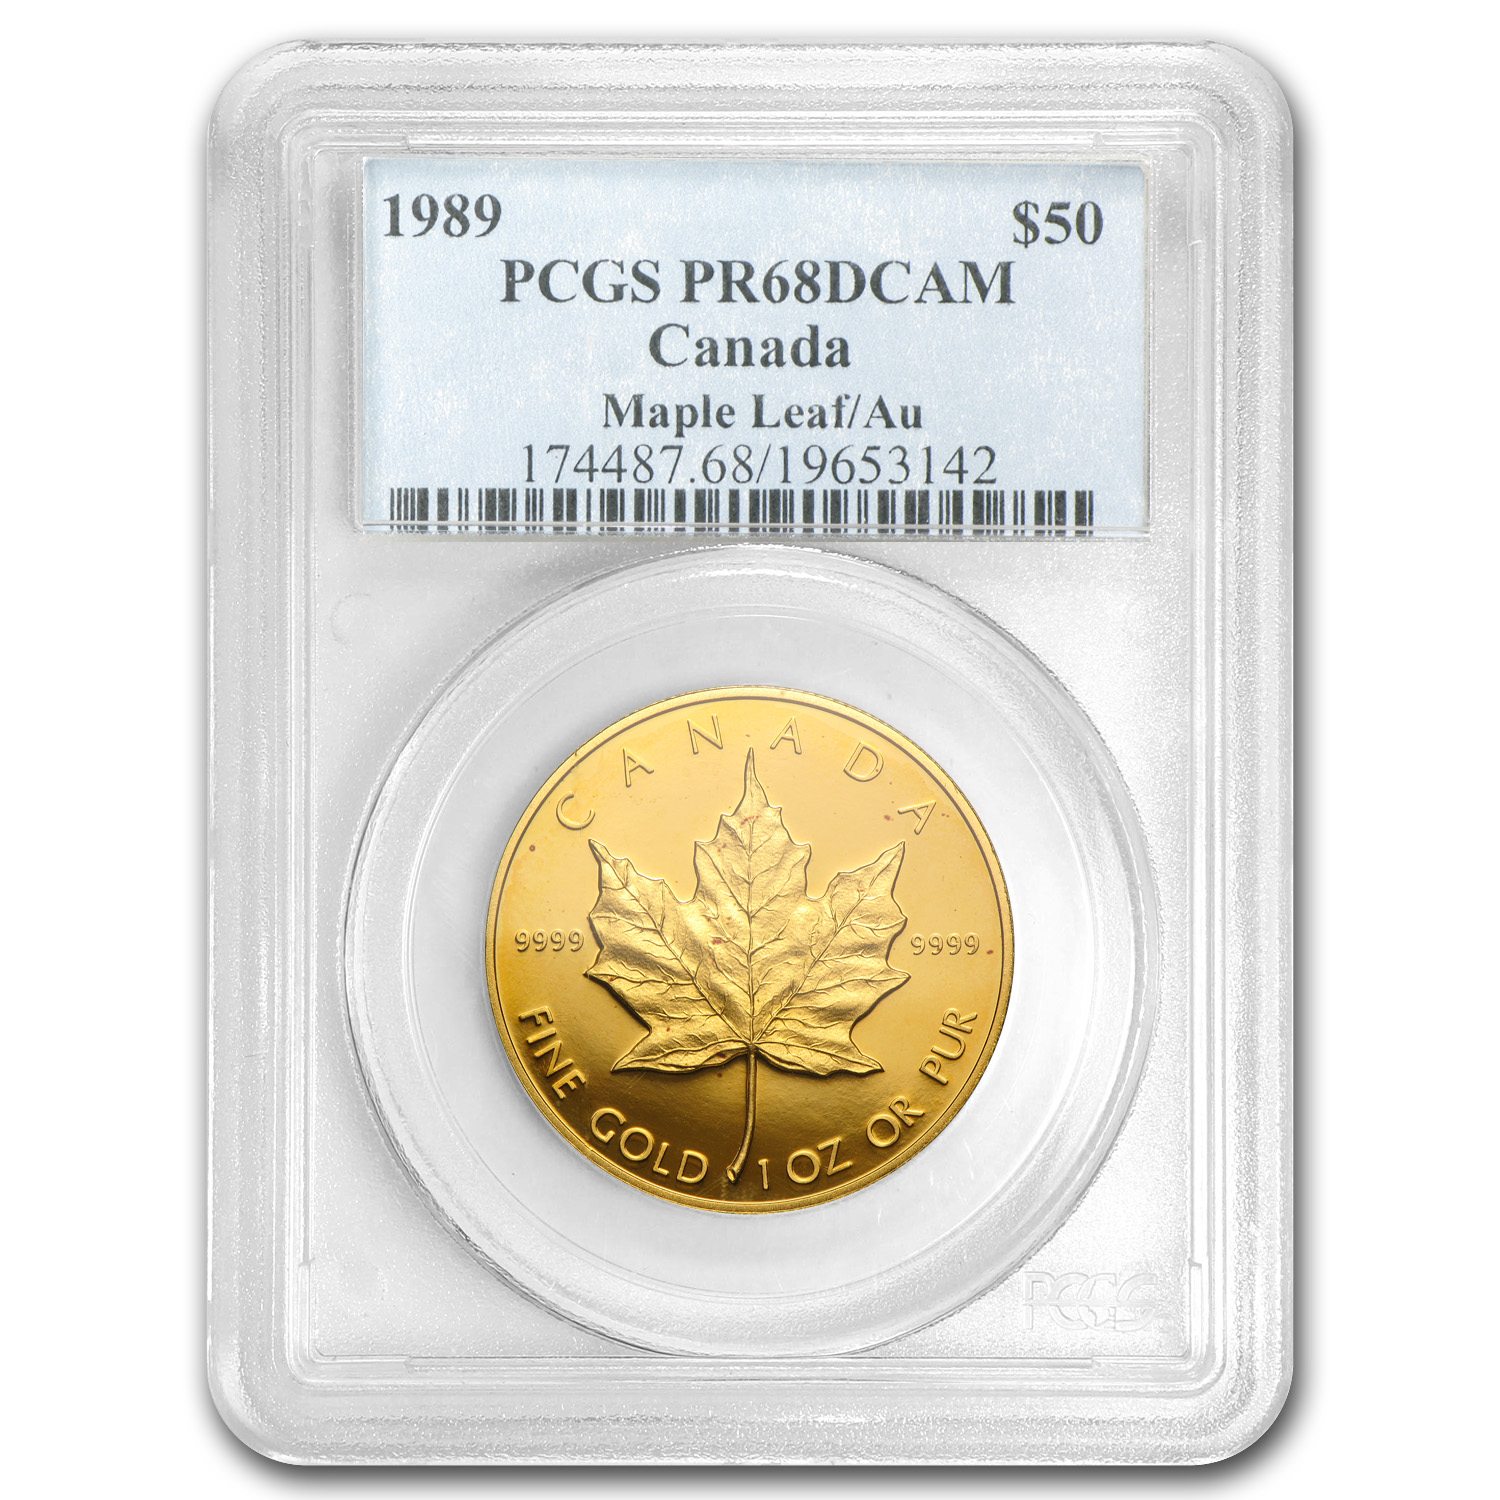 1989 Canada 1 oz Proof Gold Maple Leaf PR-68 PCGS